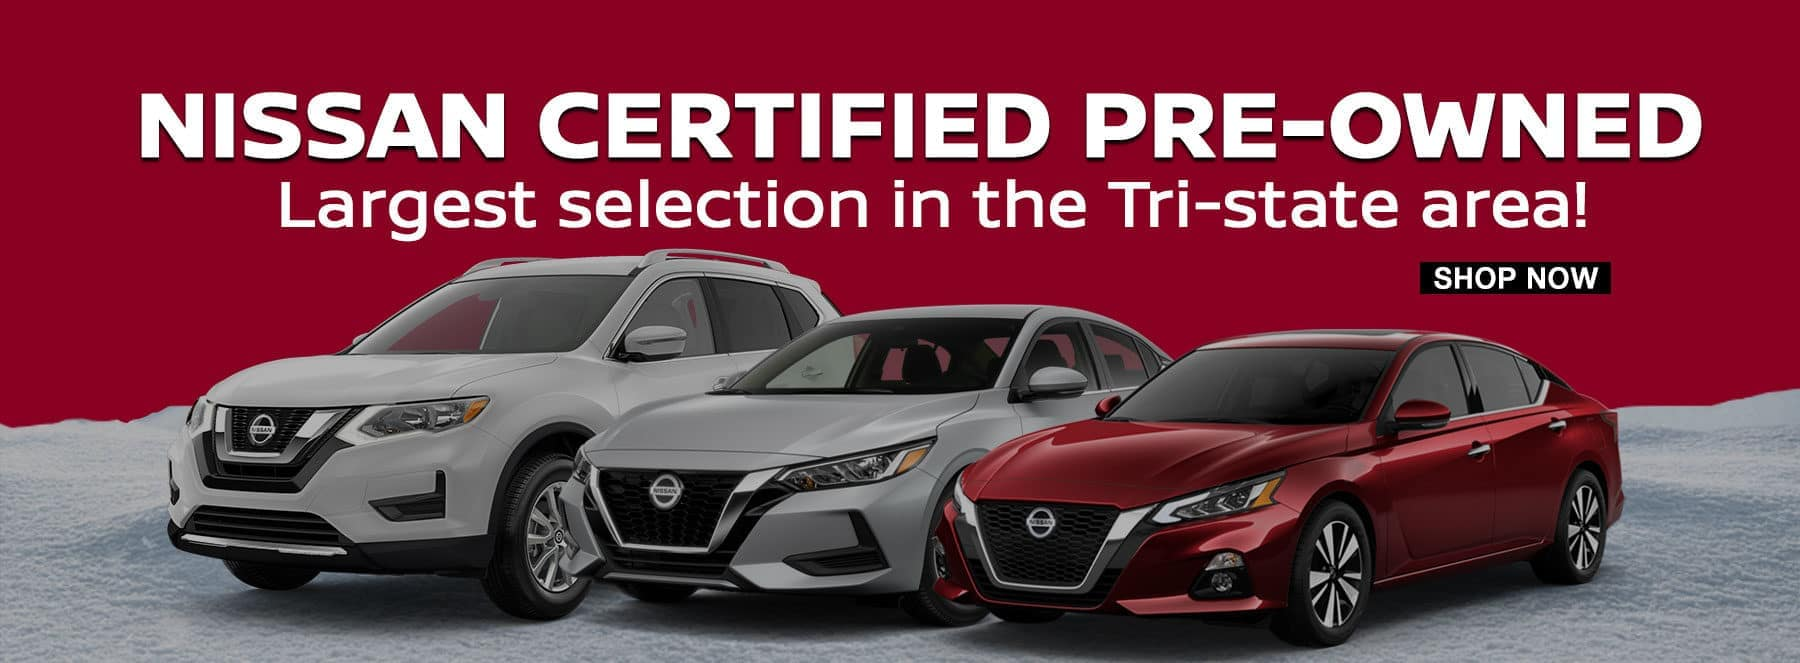 NISSAN-PREOWNED-CERT